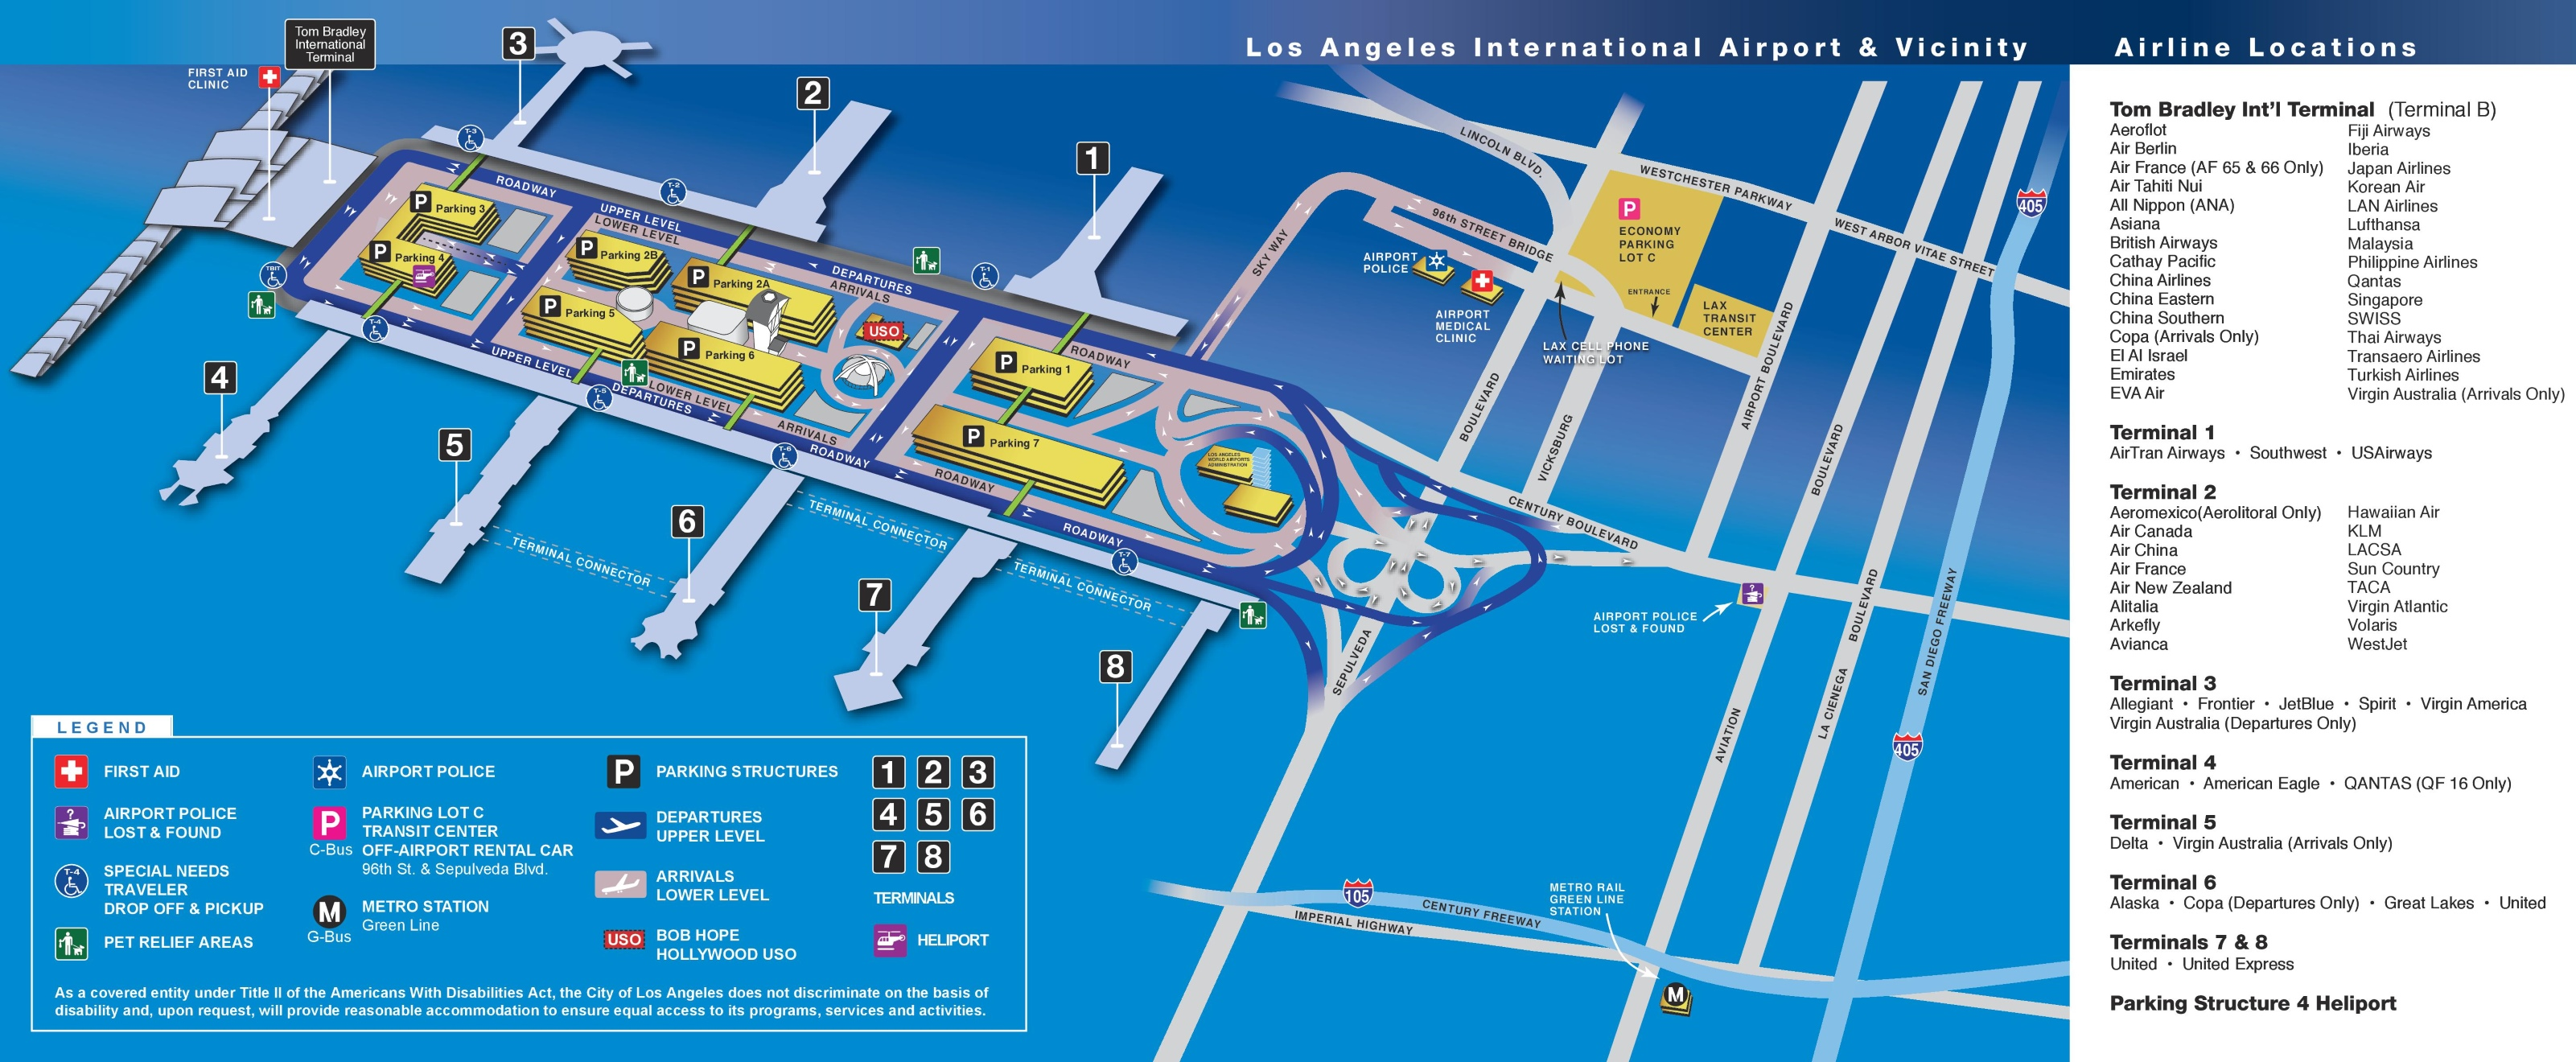 Los Angeles Airports Map Los Angeles airport map Los Angeles Airports Map